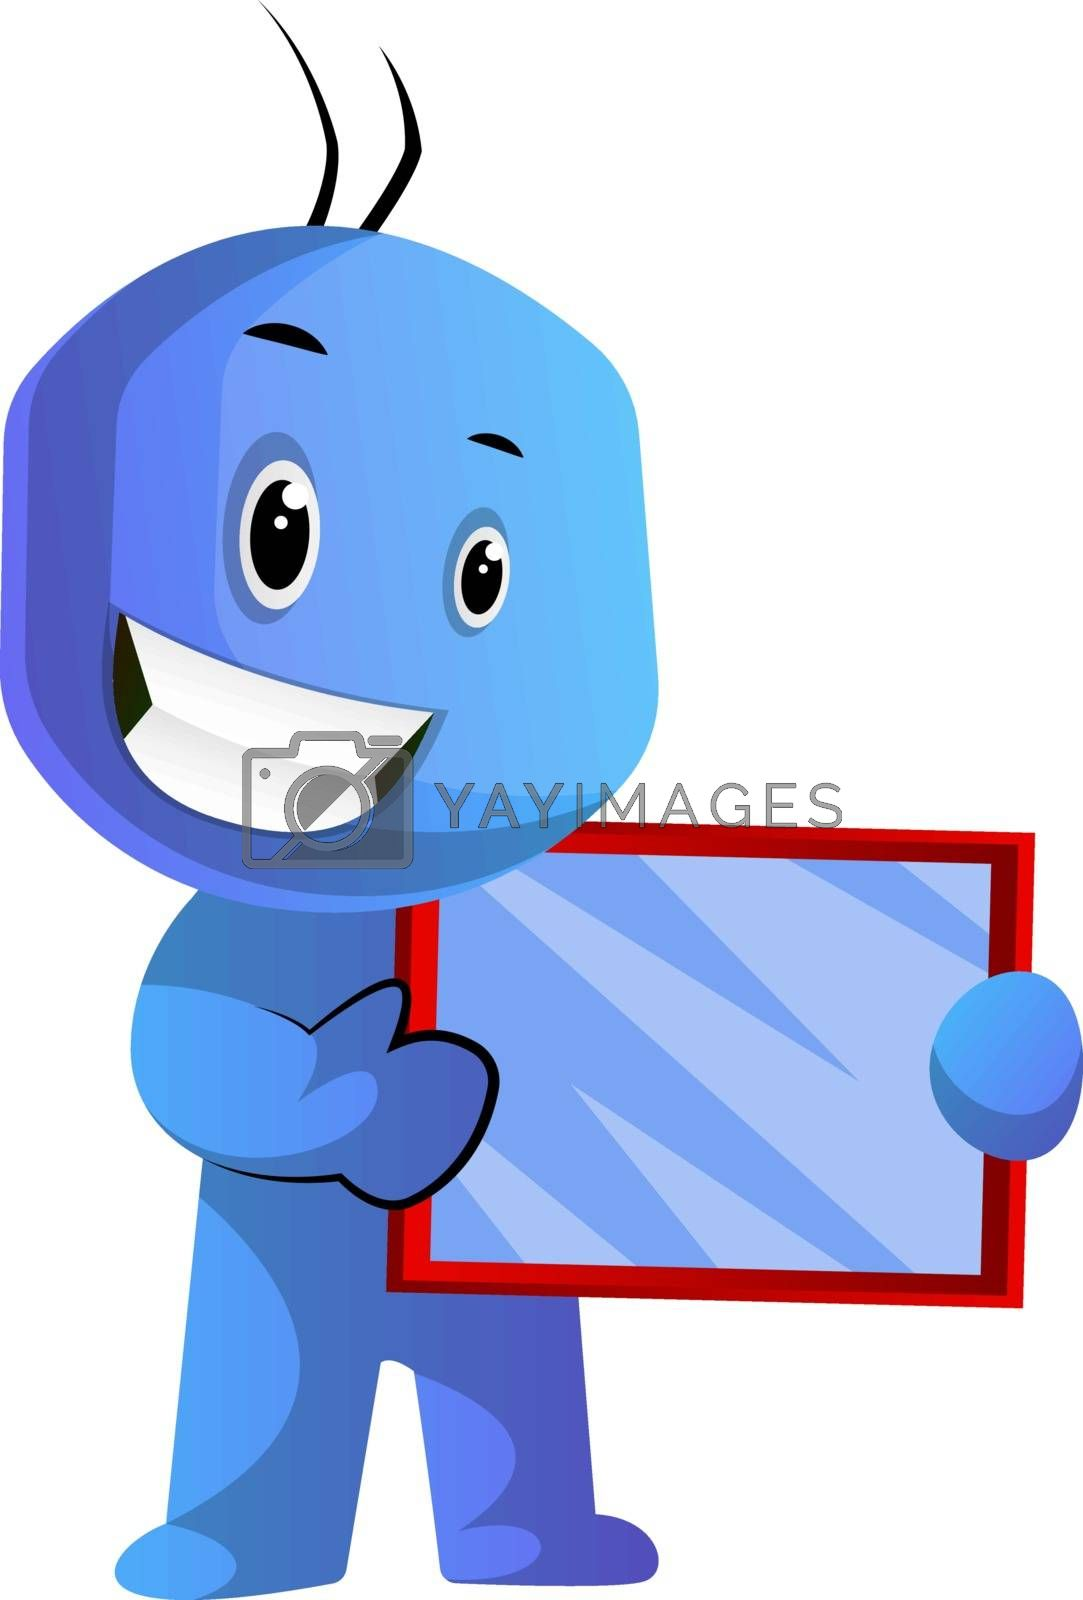 Royalty free image of Blue cartoon caracter holding a tablet illustration vector on wh by Morphart